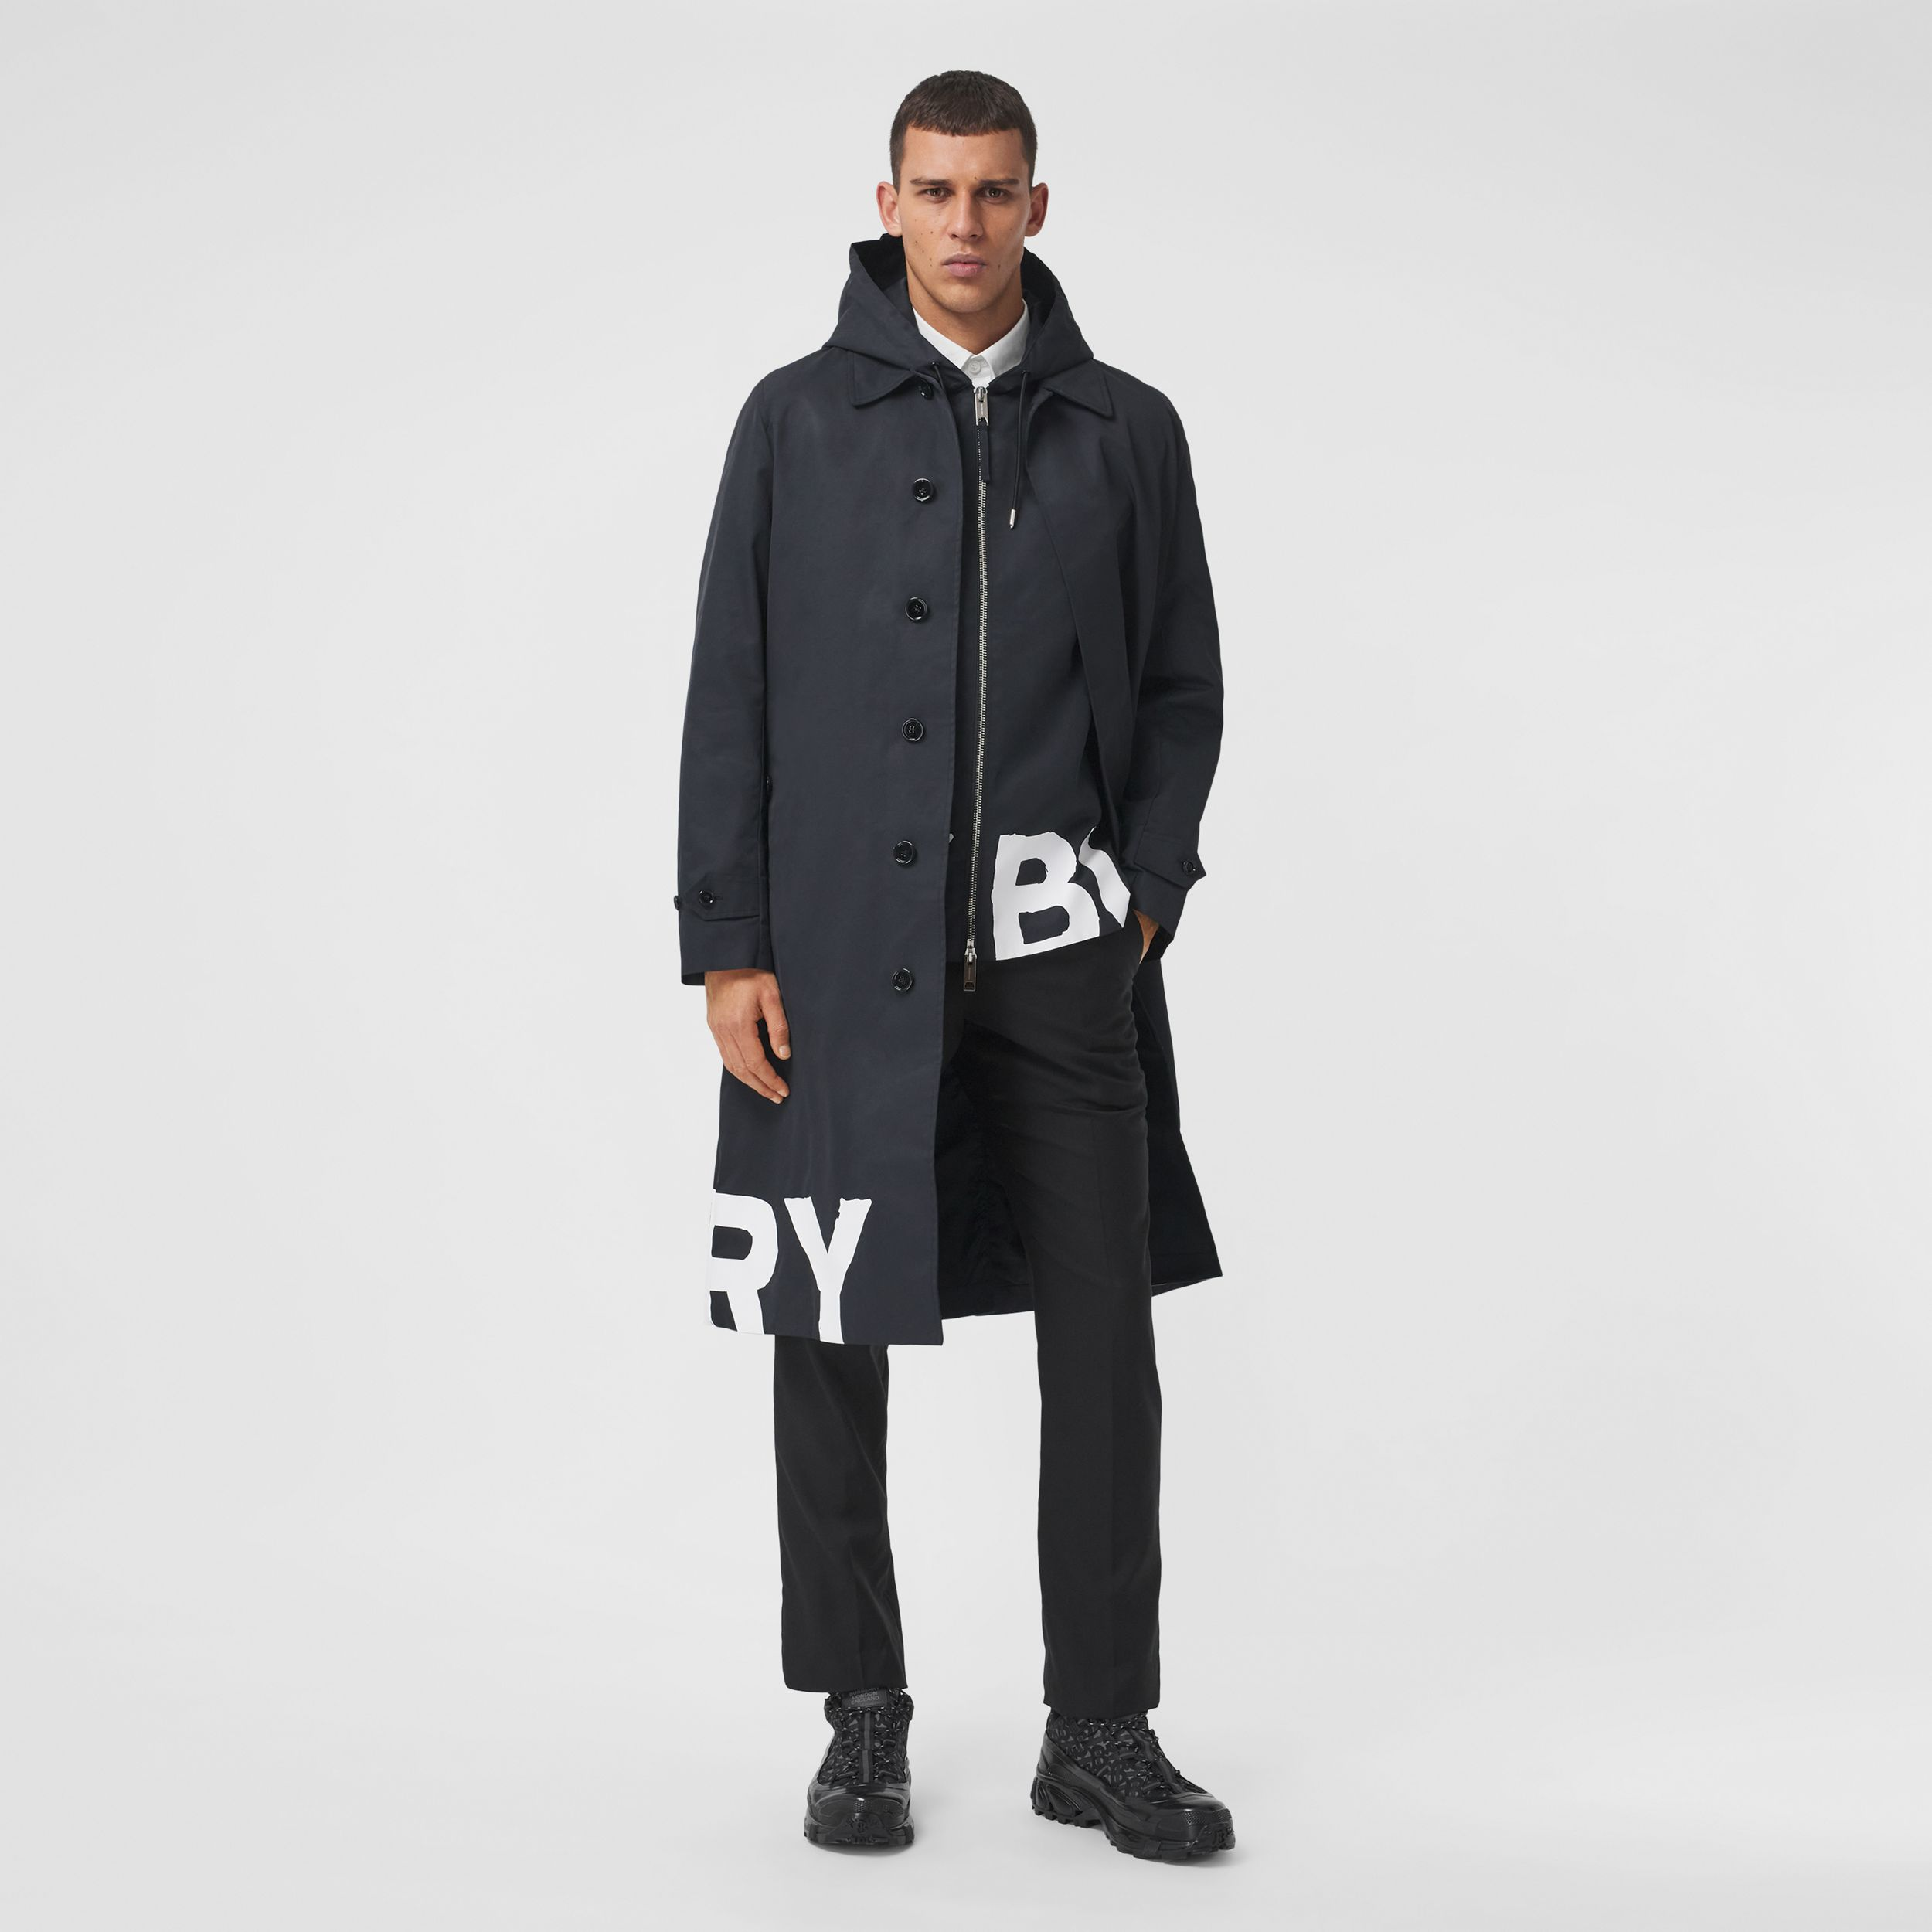 Car coat de nylon com estampa de logotipo (Preto) - Homens | Burberry - 1